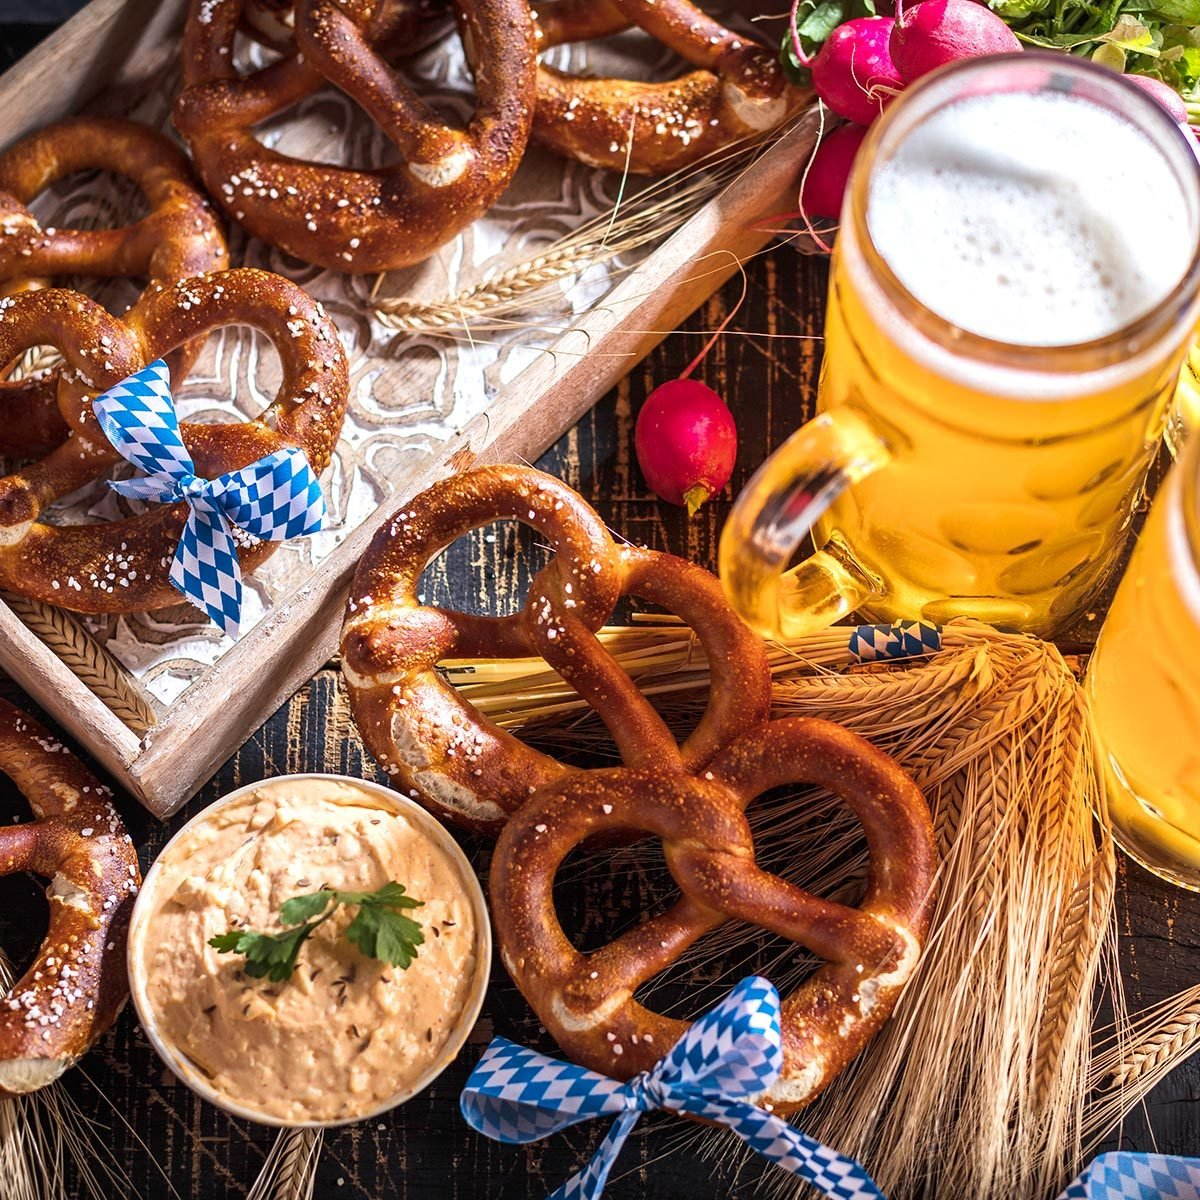 Bavarian Beer and Prezel